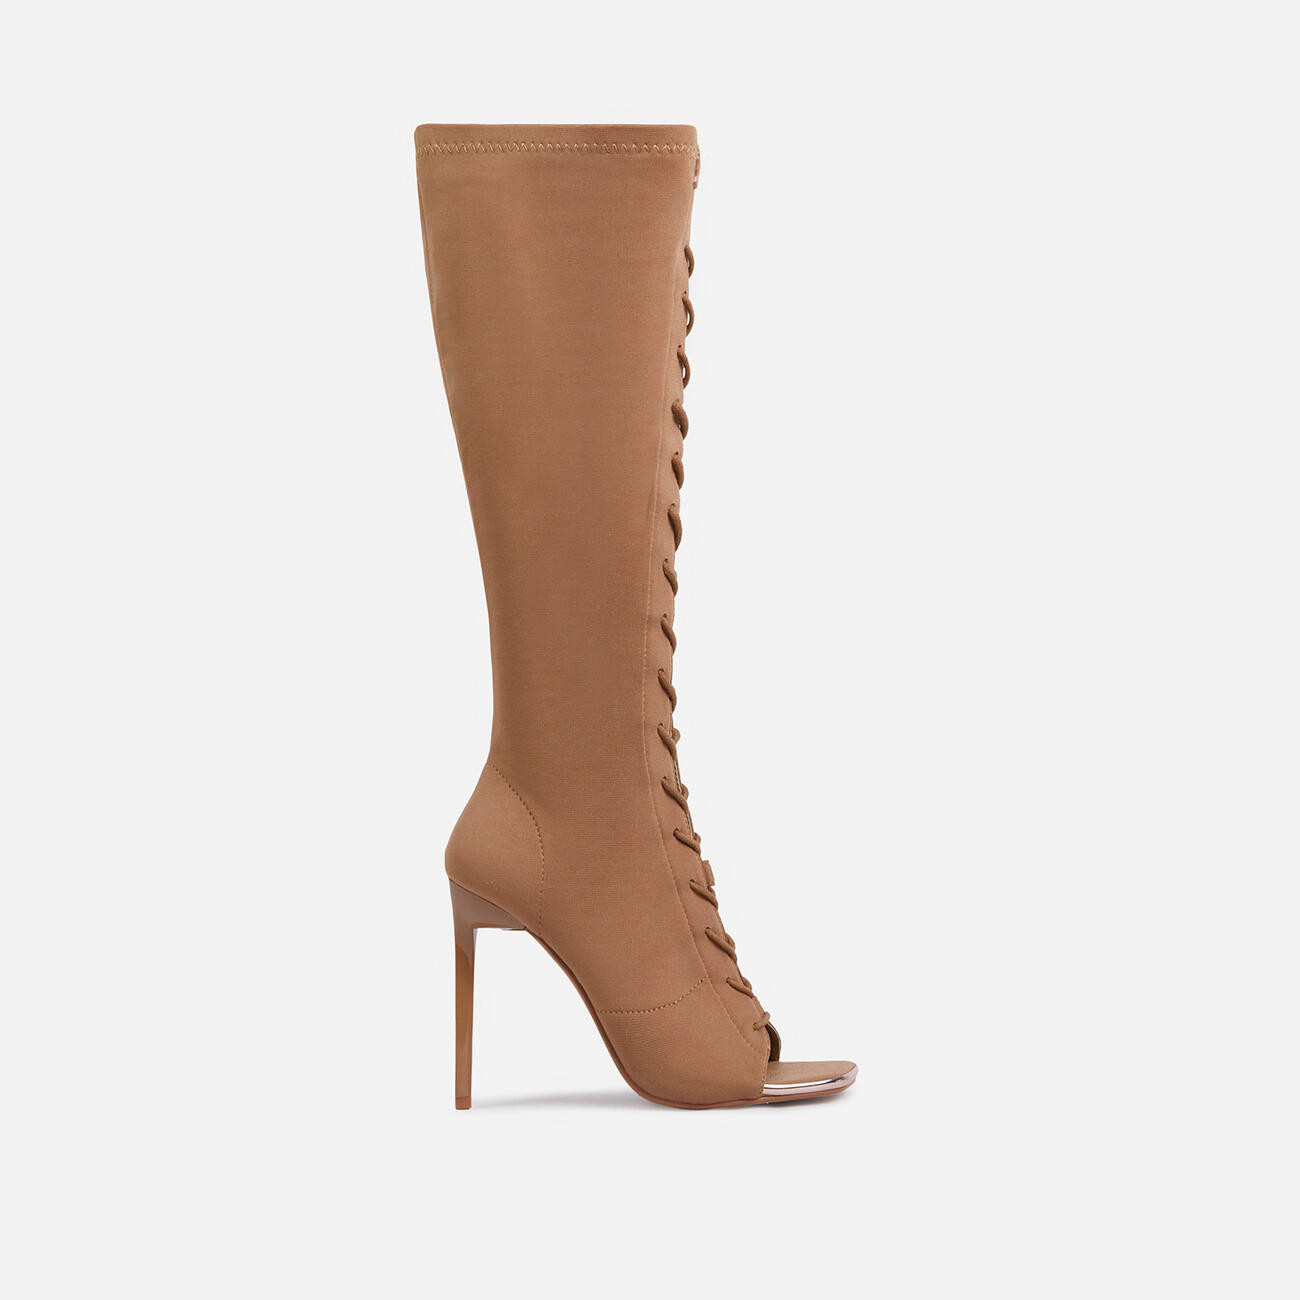 Embers Lace Up Square Peep Toe Knee High Ankle Sock Boot In Nude Knit